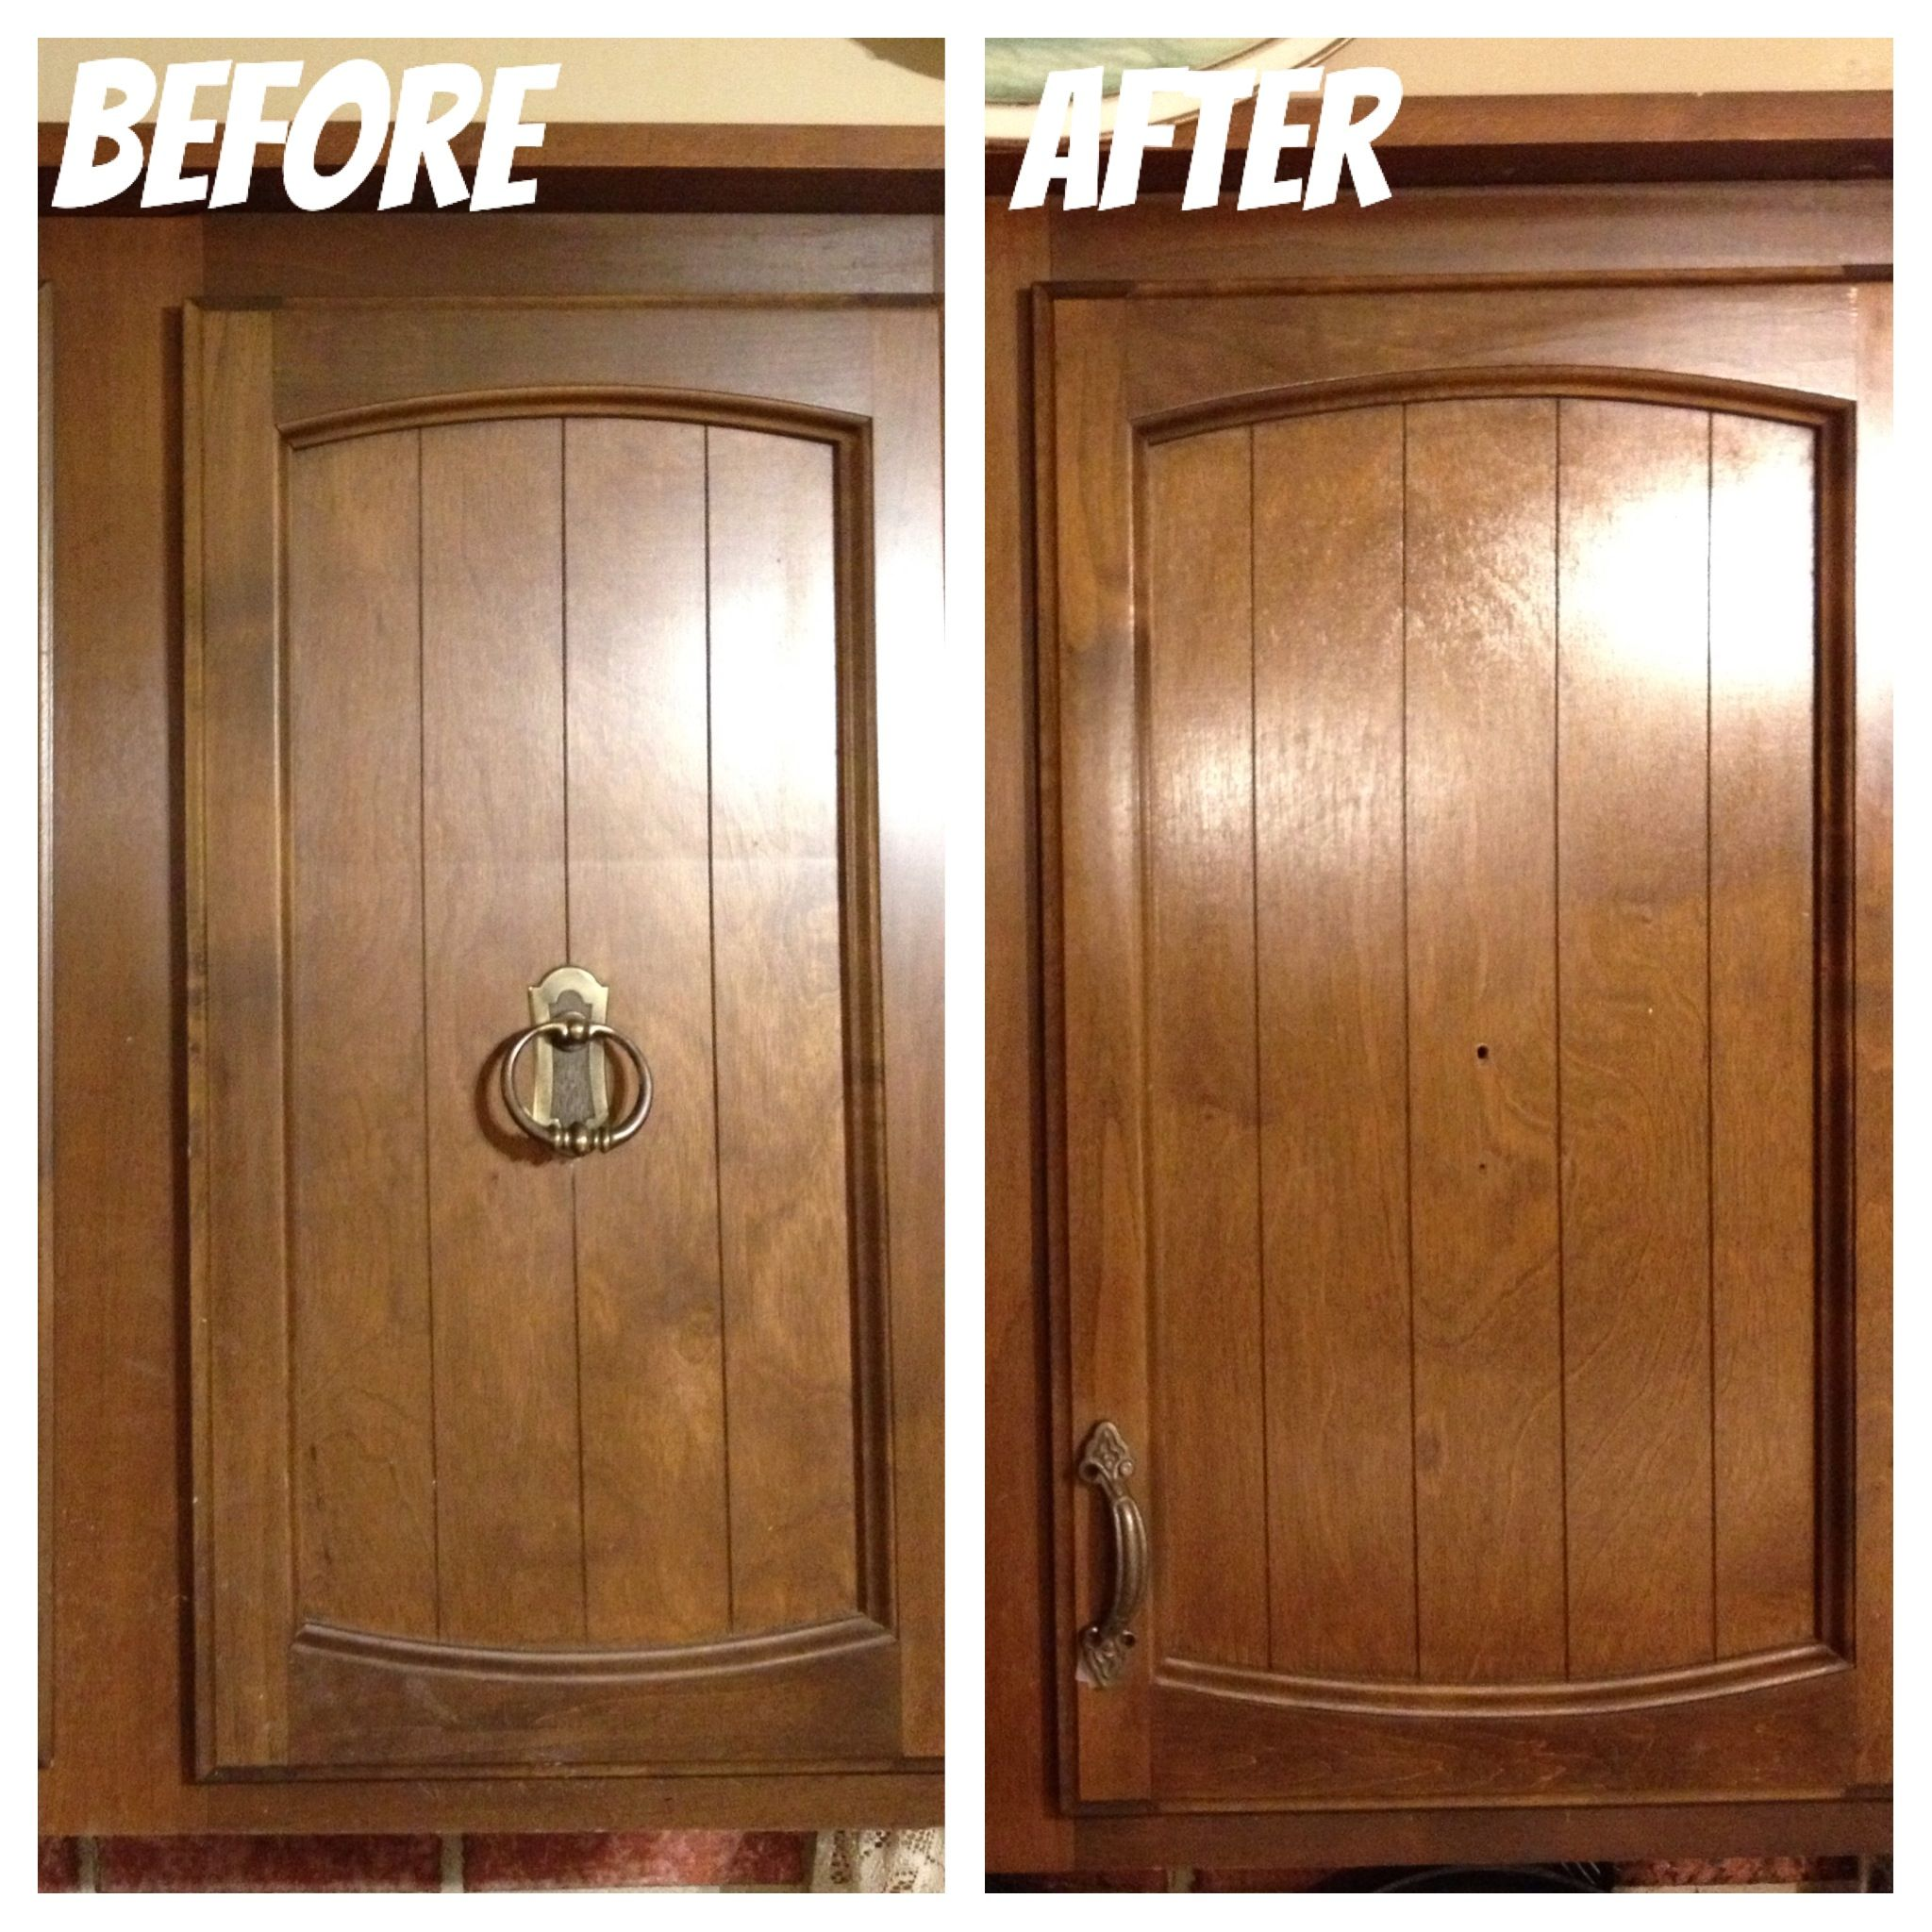 A Simple Hardware Change Transformed These Cabinets For Less Than 2 Each 50 Off From Hobby